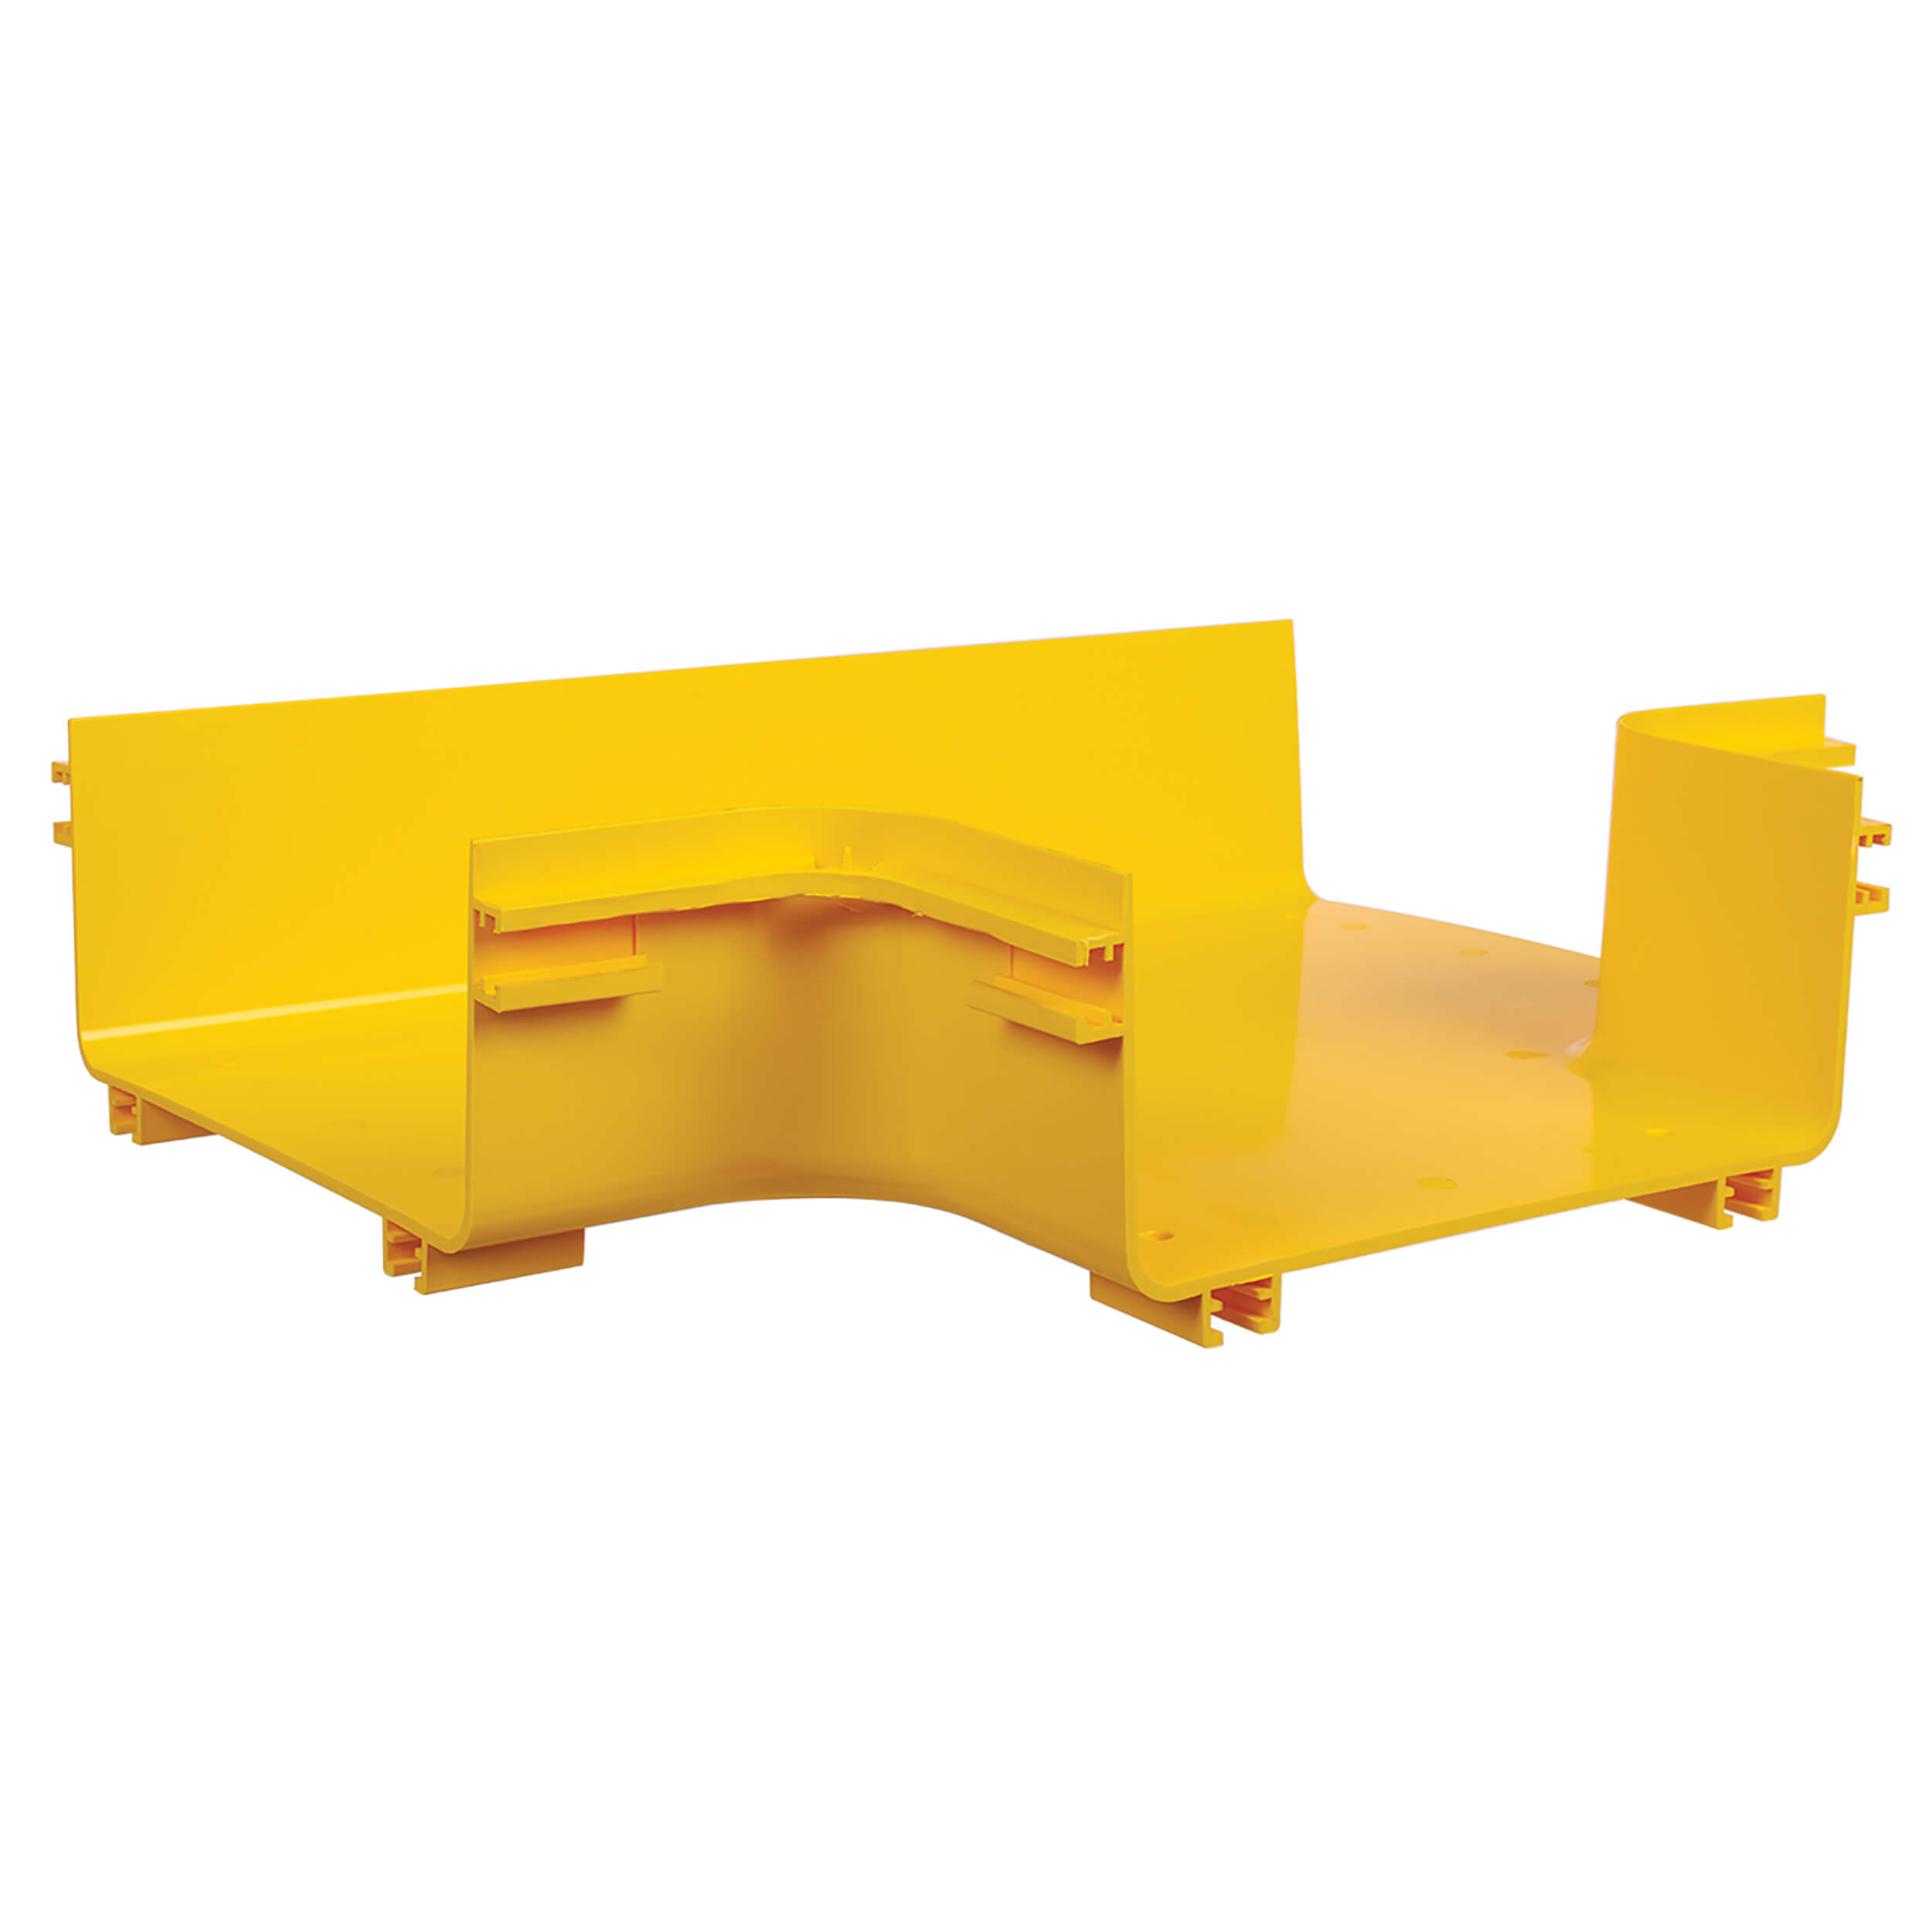 Tripp Lite SRFC10JUNT Toolless Horizontal T-Junction